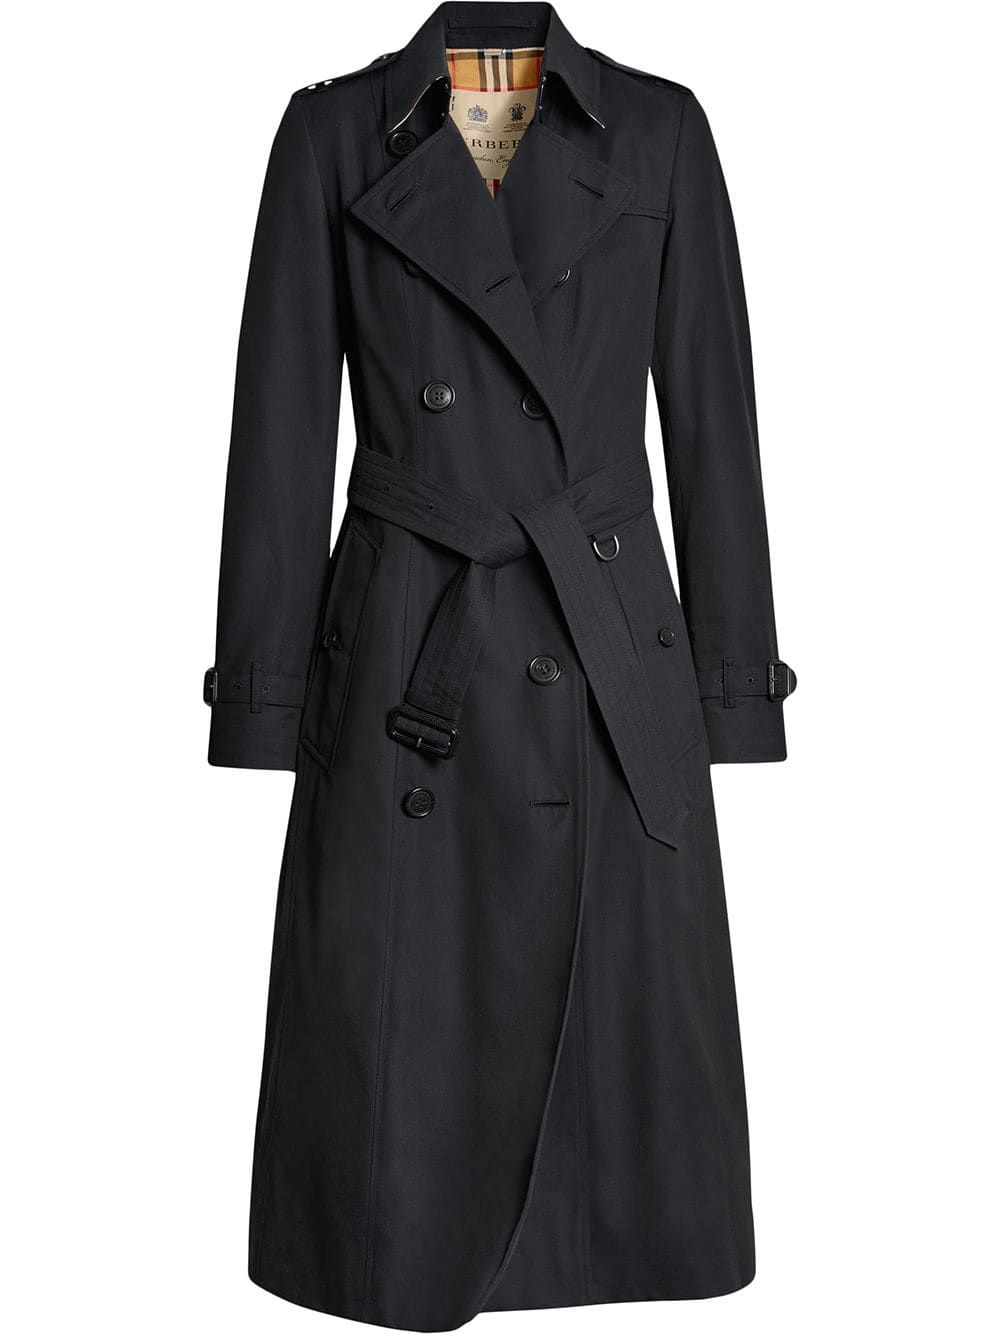 Palton dama, Burberry, The Long Chelsea Heritage, AW19 36 Albastru inchis